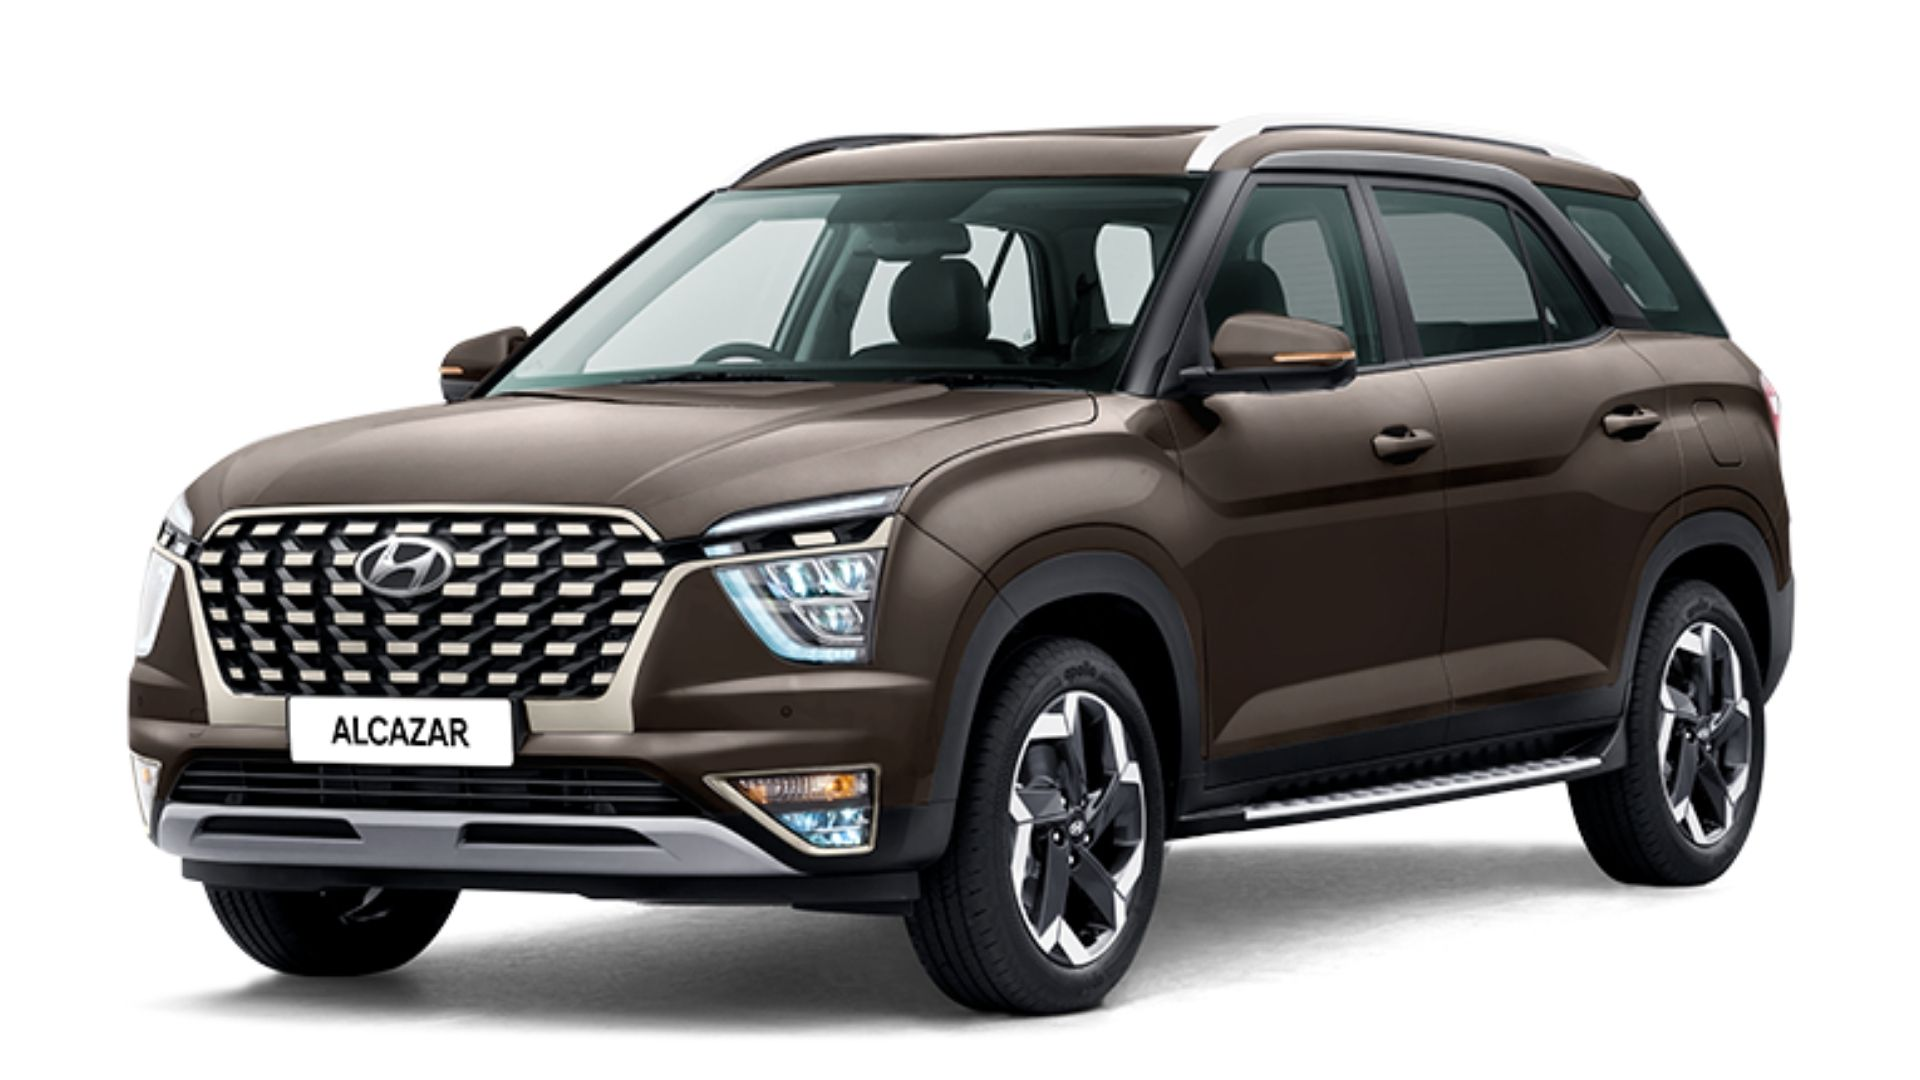 Hyundai Alcazar Review – Is it a Revamped Creta with 7 seats or More?